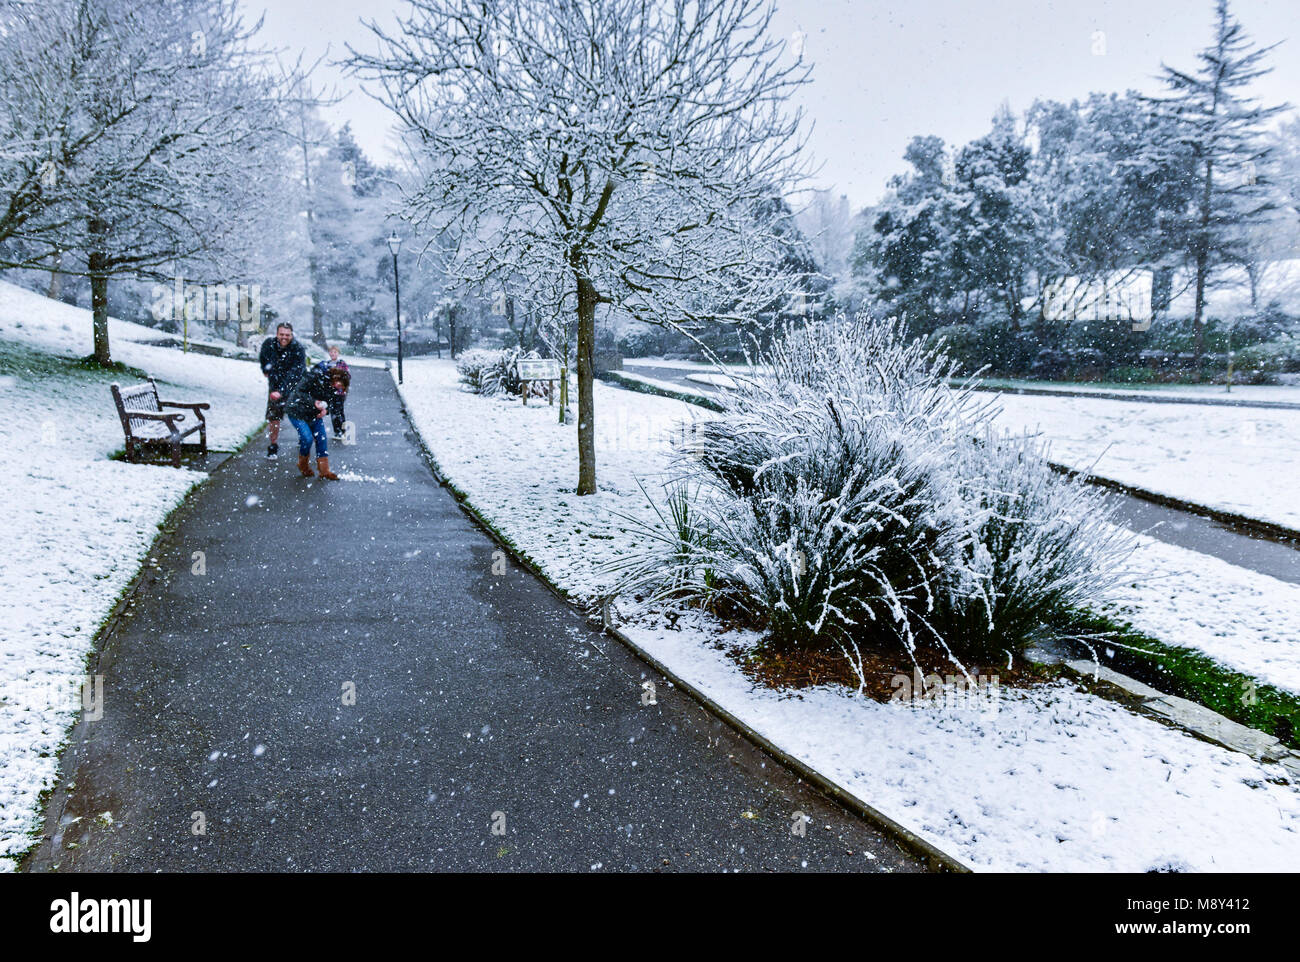 A family enjoying the snow in Trenance Gardens in Newquay Cornwall. - Stock Image